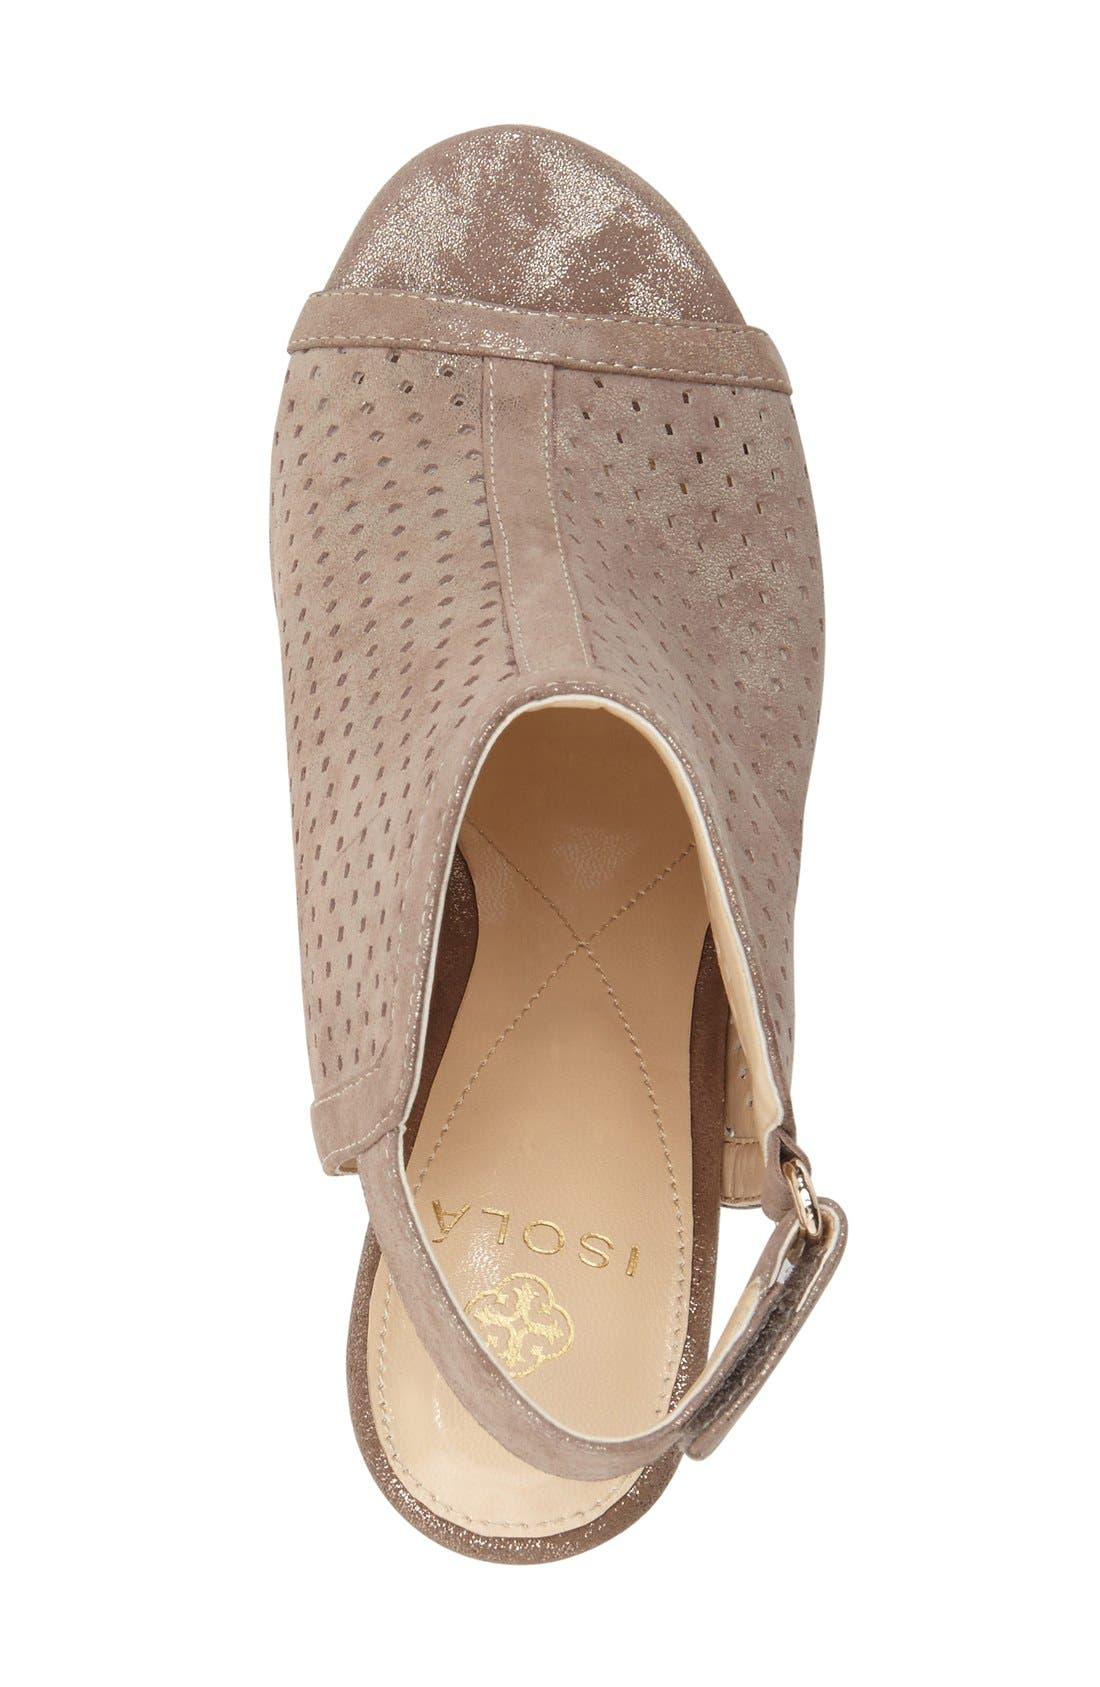 'Lora' Perforated Open-Toe Bootie Sandal,                             Alternate thumbnail 3, color,                             040